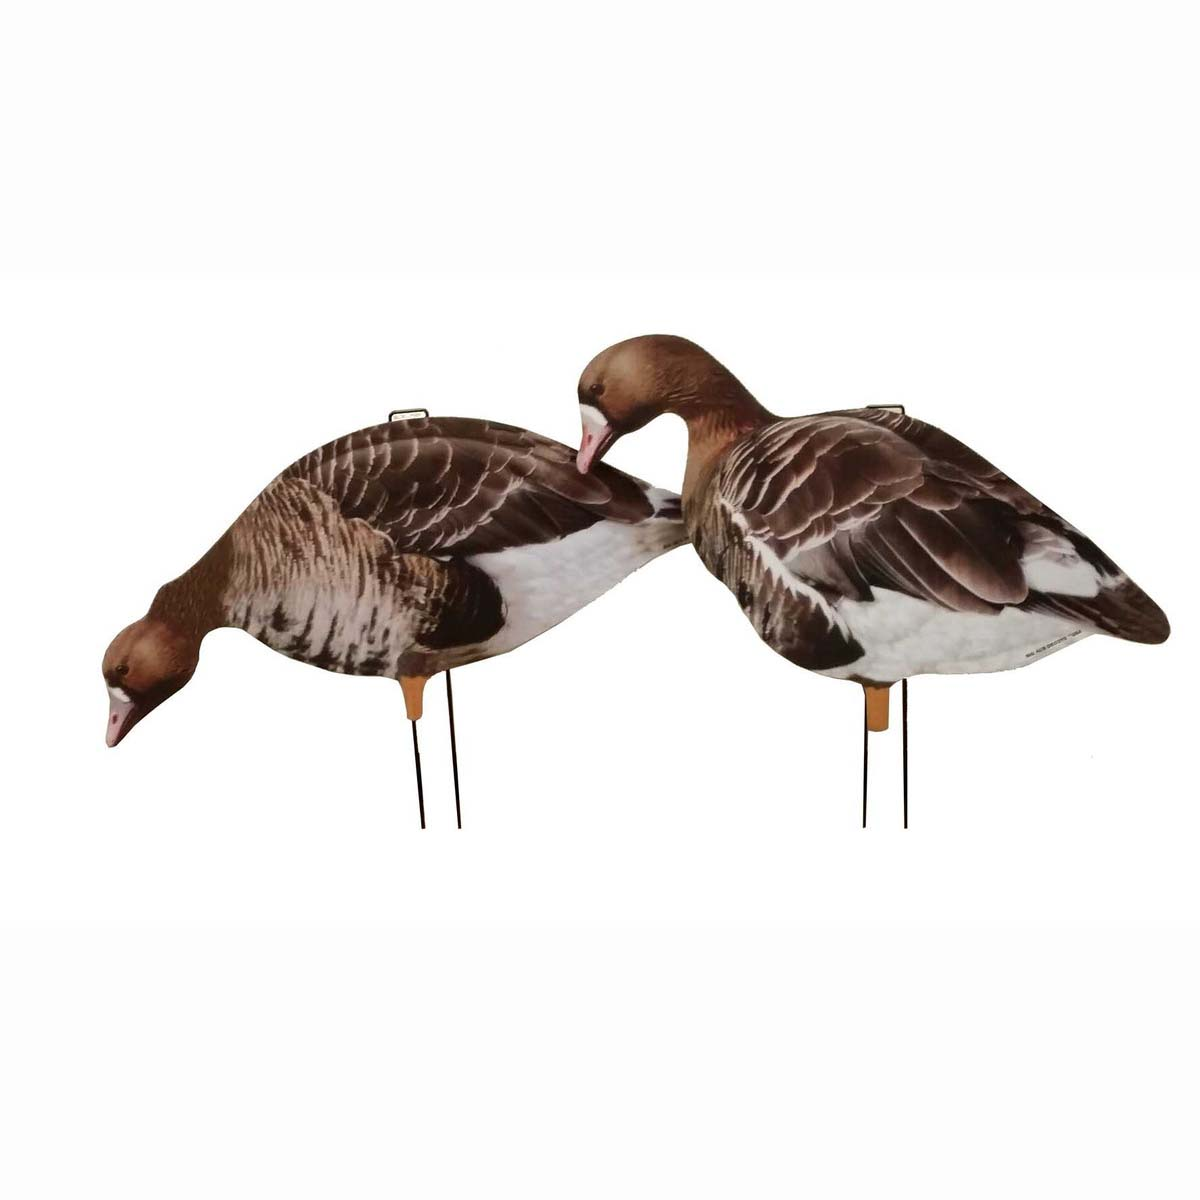 Big Als Decoys 12 Pack of Speck Silhouettes